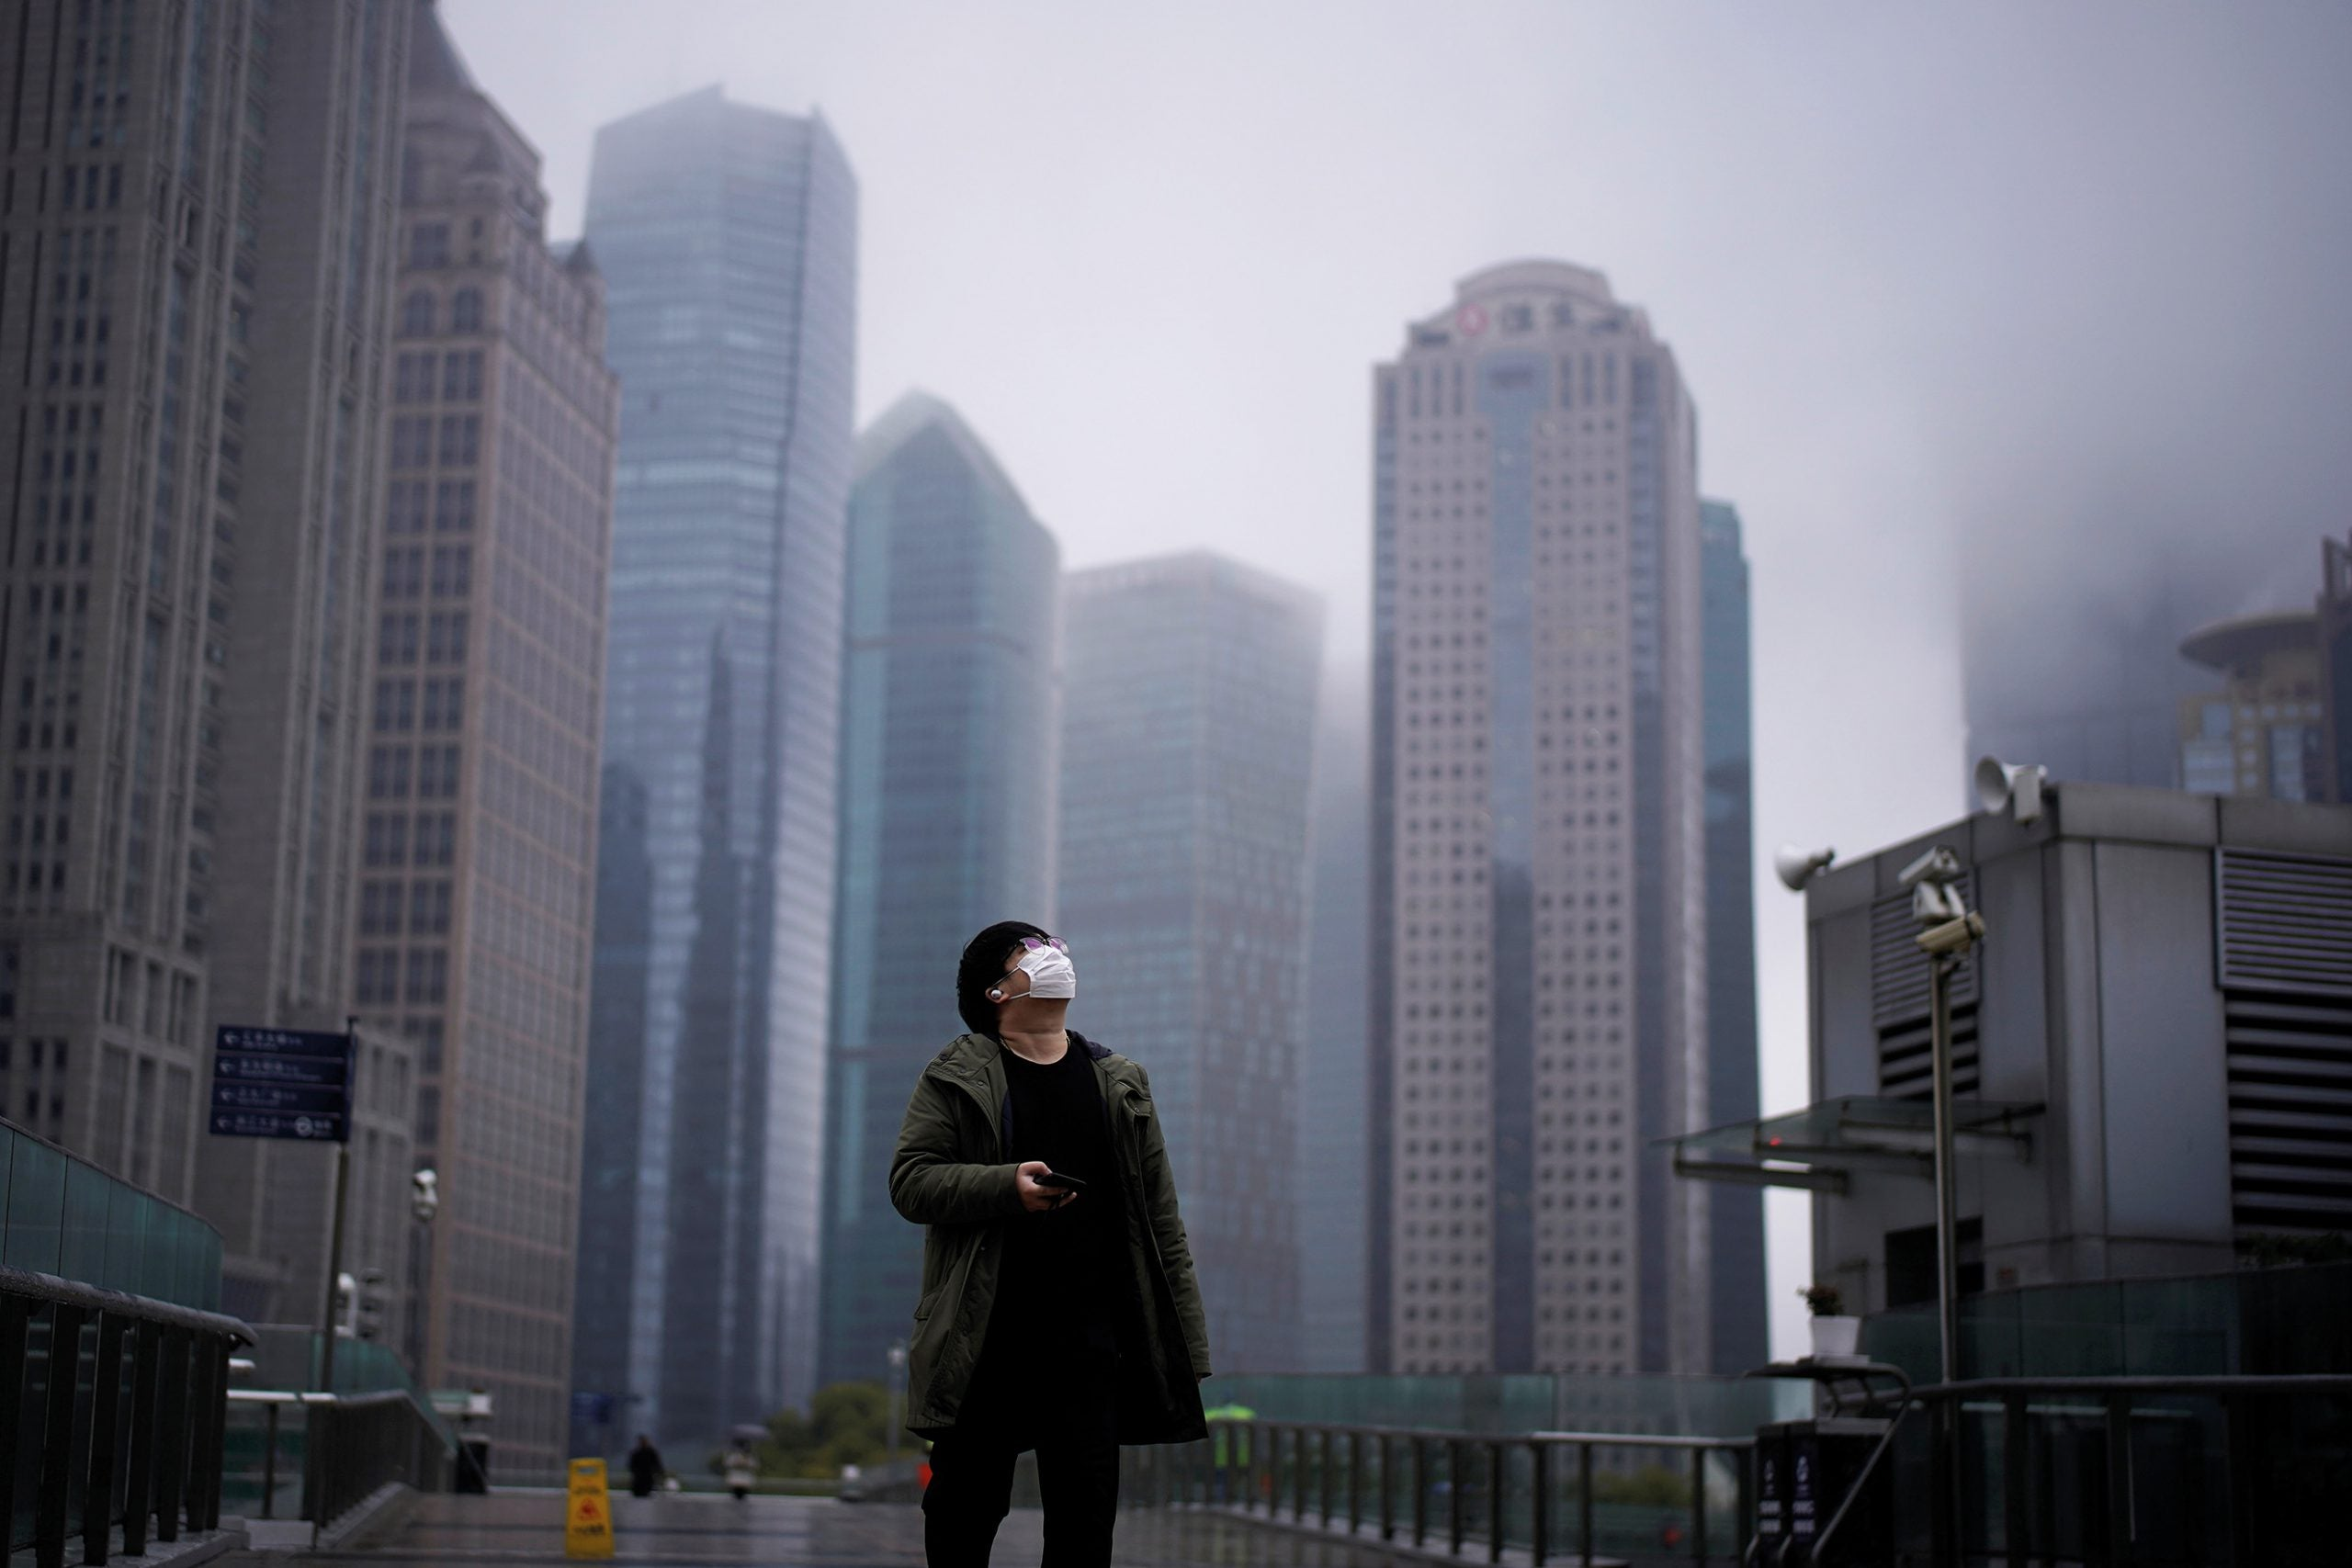 The state transformed: The crisis has turbocharged China's intrusive state capitalism